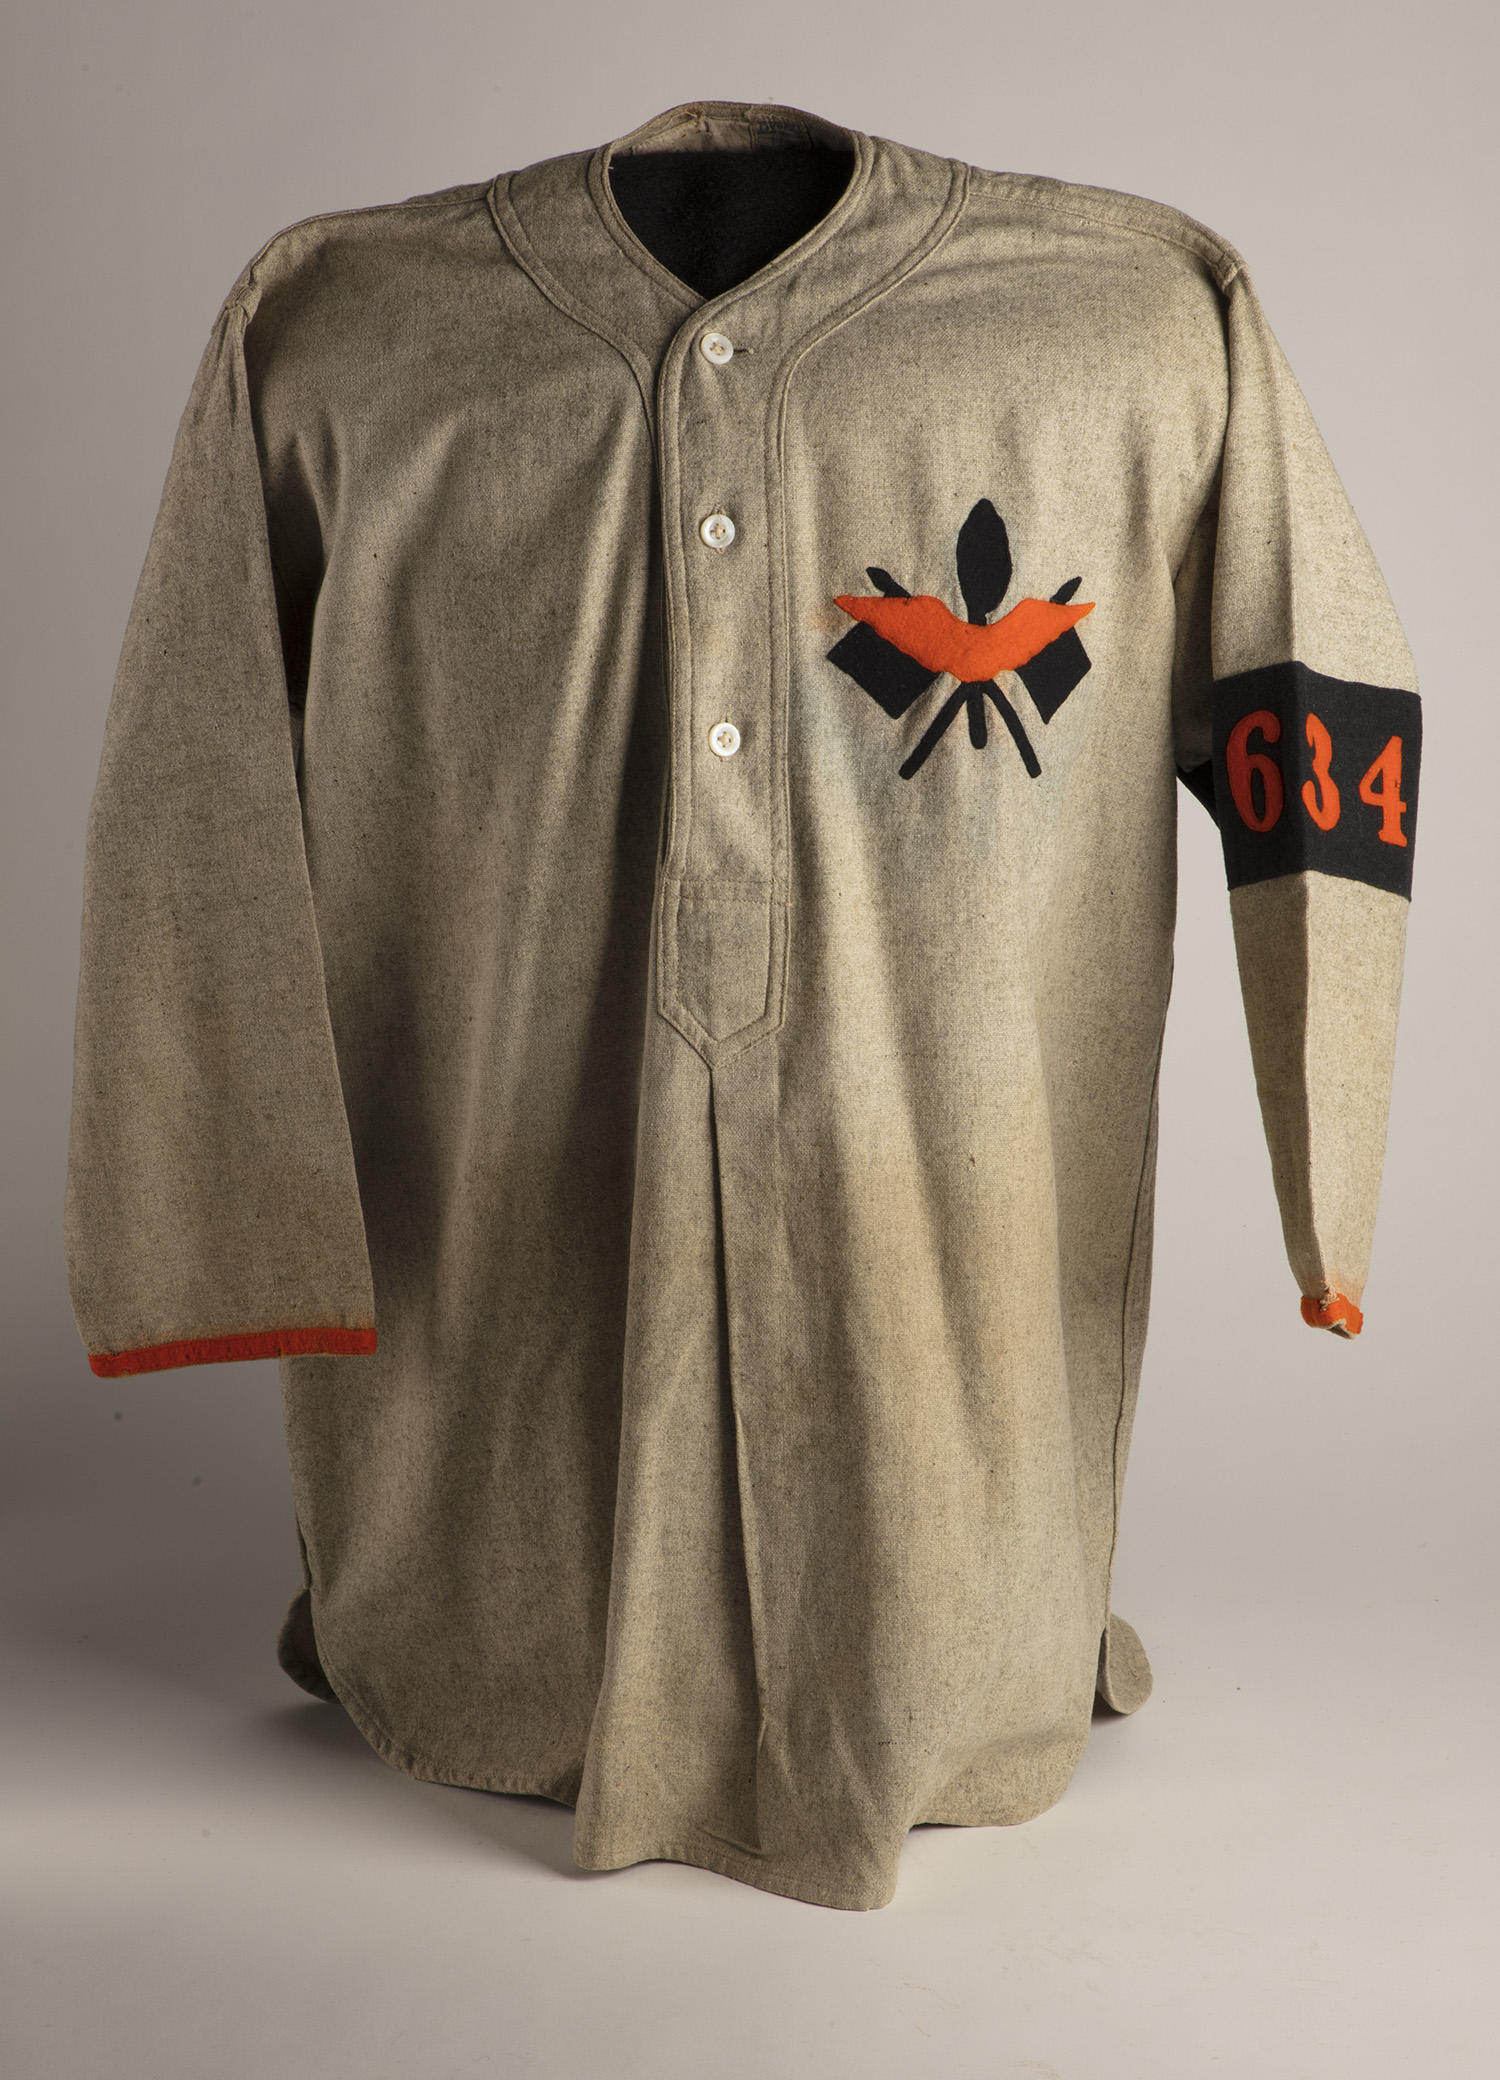 "This well-preserved World War I Army Signal Corps uniform was recently donated to the Hall of Fame by Ed Kaltreider, grandson of Walter Howard Kaltreider. <a href=""https://collection.baseballhall.org/PASTIME/world-war-i-army-signal-corps-shirt-1917"">PASTIME</a> (By Photographer Milo Stewart Jr./National Baseball Hall of Fame and Museum)"